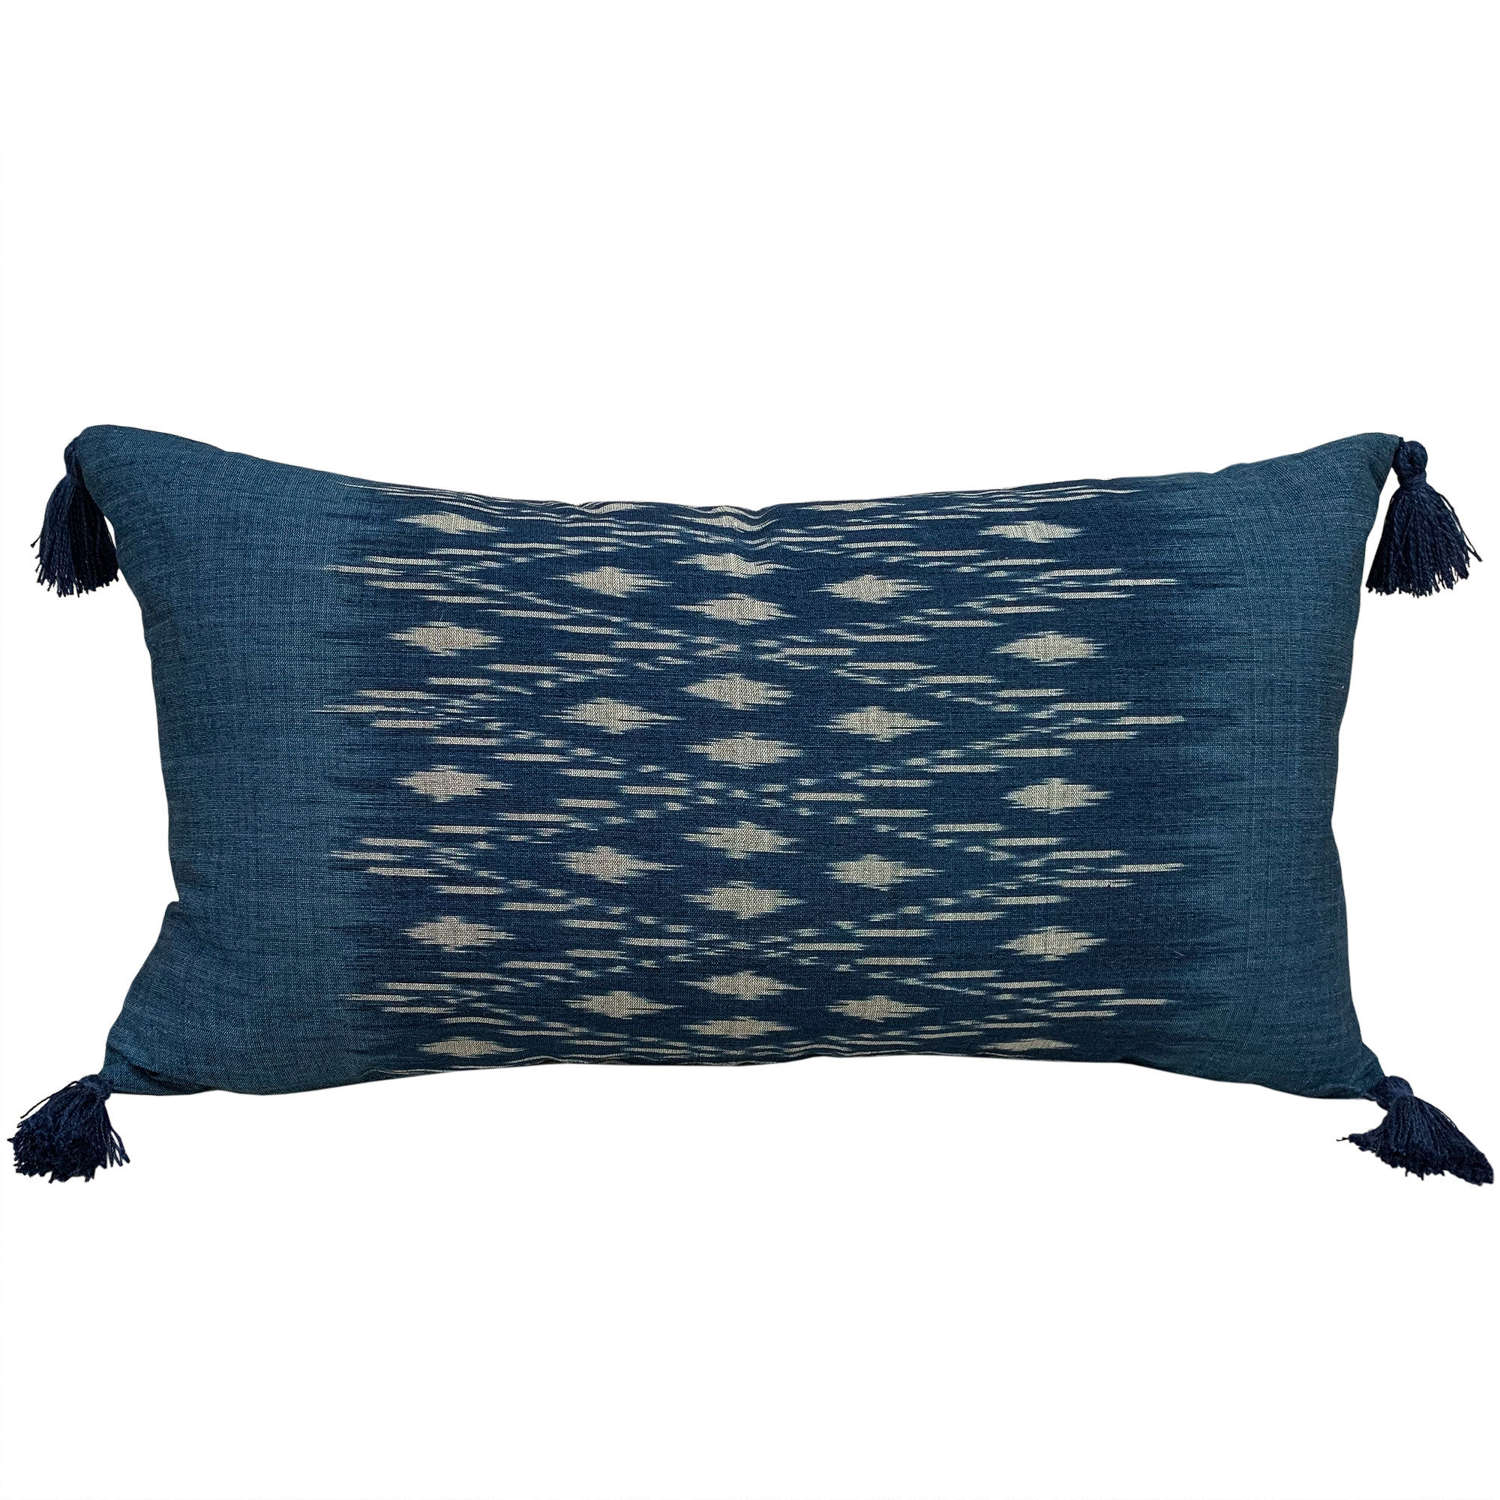 Indigo ikat cushion with tassels